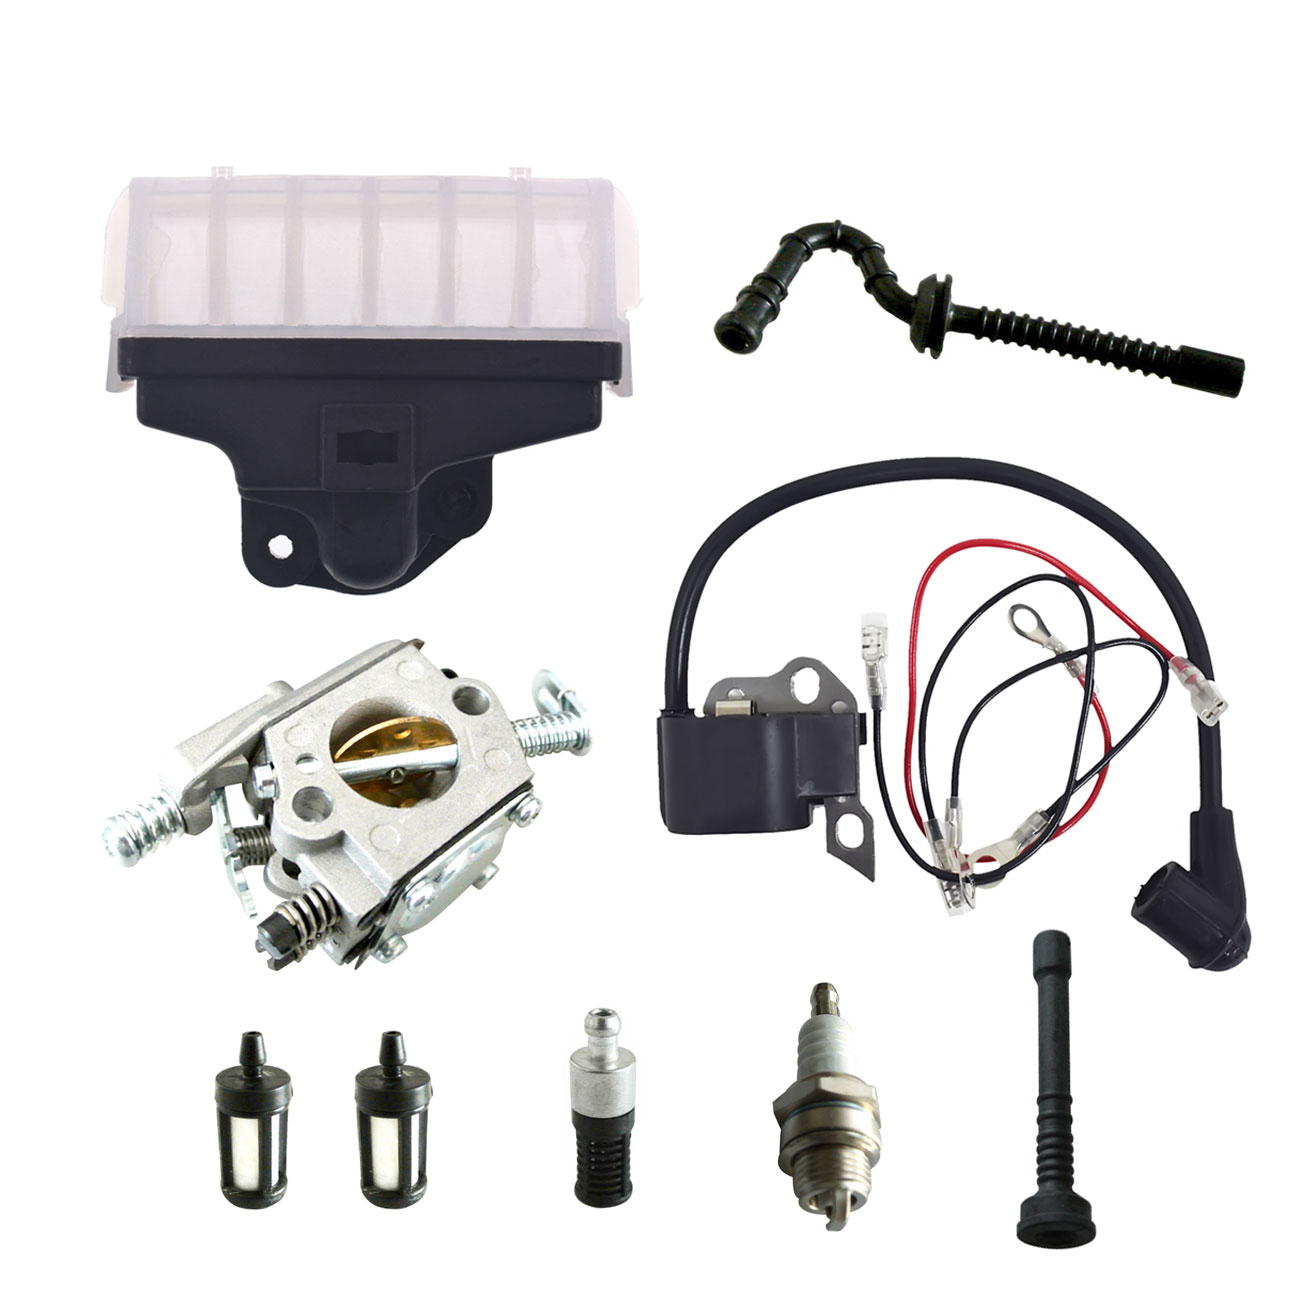 Ignition Coil Carburetor Kit Spark Plug For STIHL Chainsaw 021 023 025 MS210 MS230 MS250